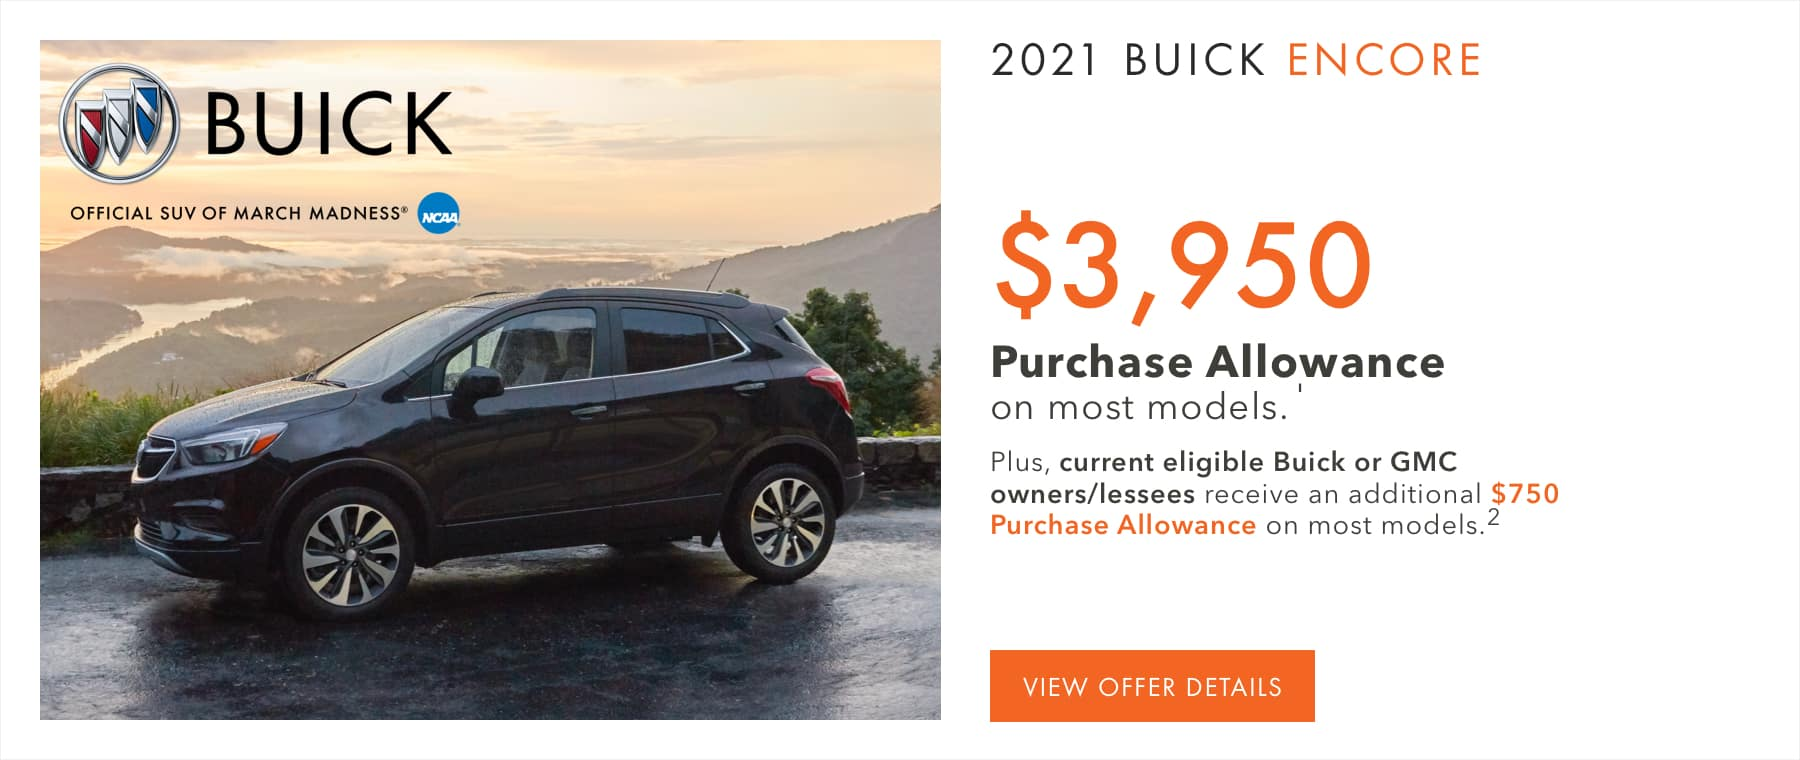 Price after all offers on this Encore.1 Plus, current eligible Buick or GMC owners/lessees receive an additional $750 Purchase Allowance on most models.2